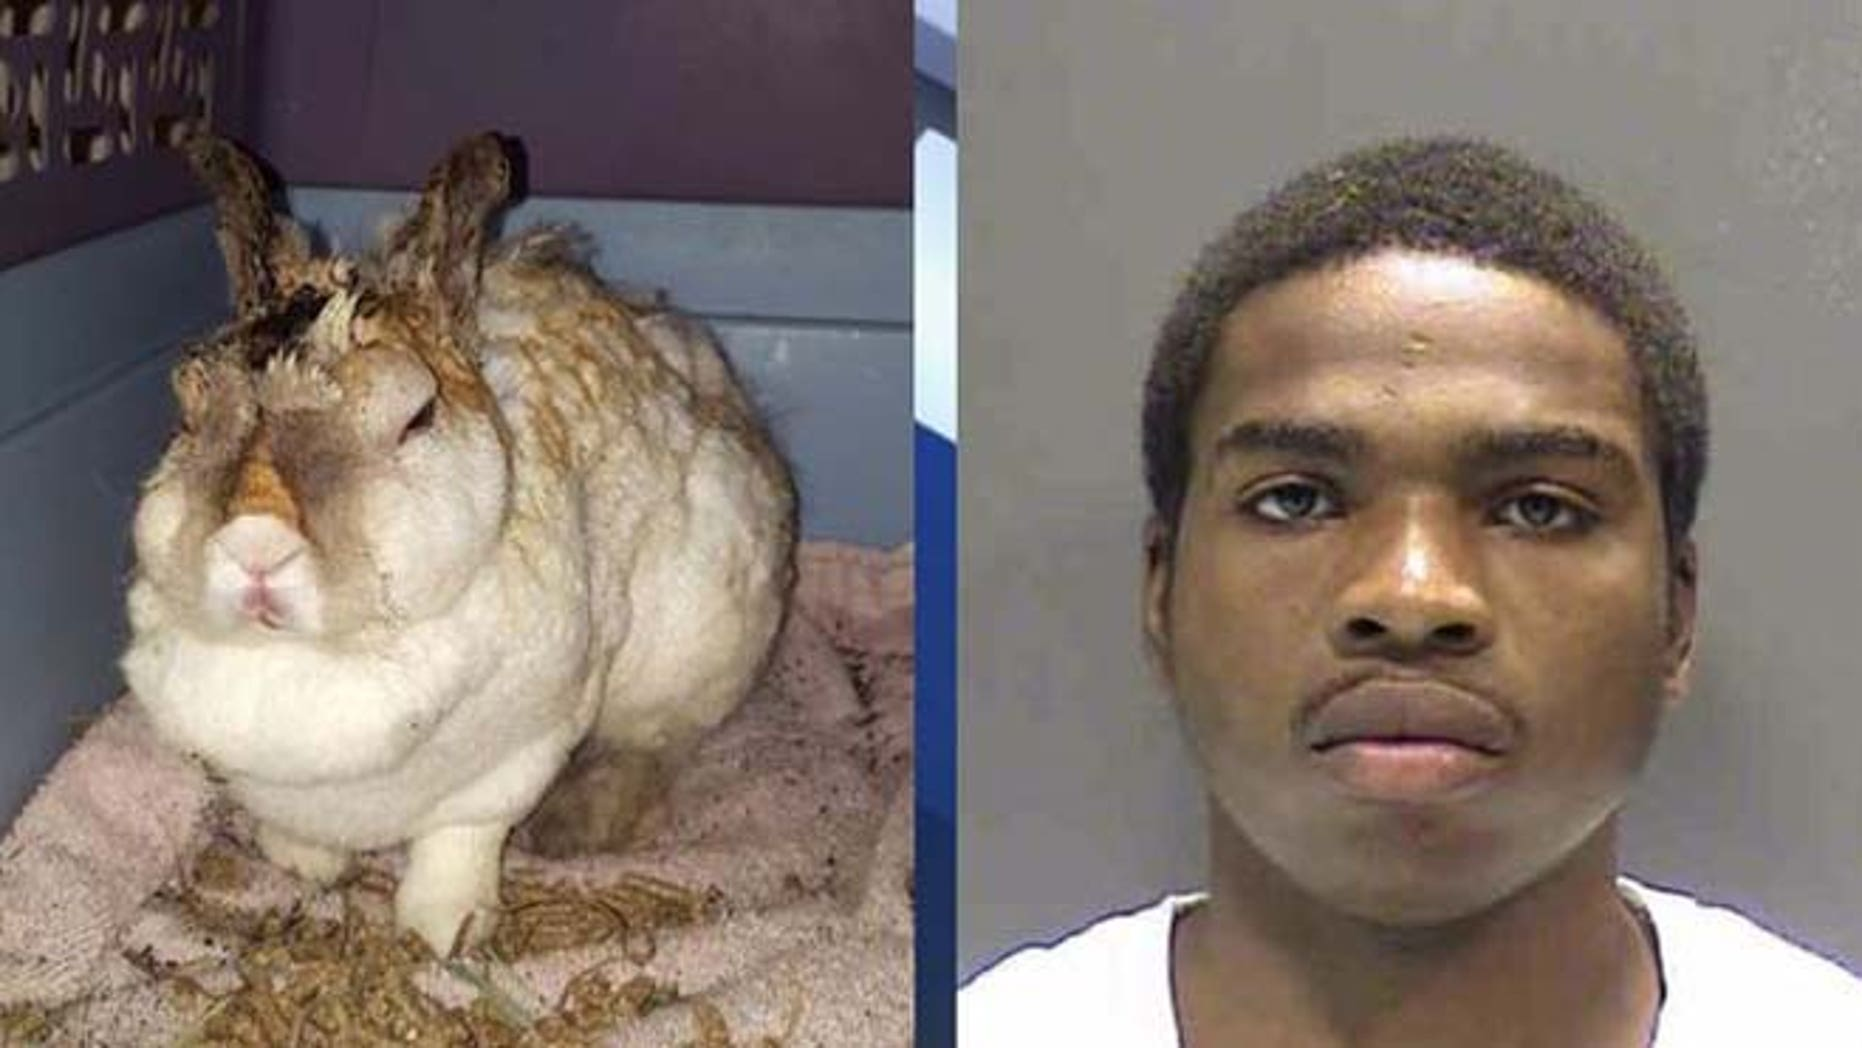 Manasseh Walker, 22, was arrested Thursday on charges of burning a domestic rabbit named Thumper. (Sarasota County Sheriff's Office/Fox 4)